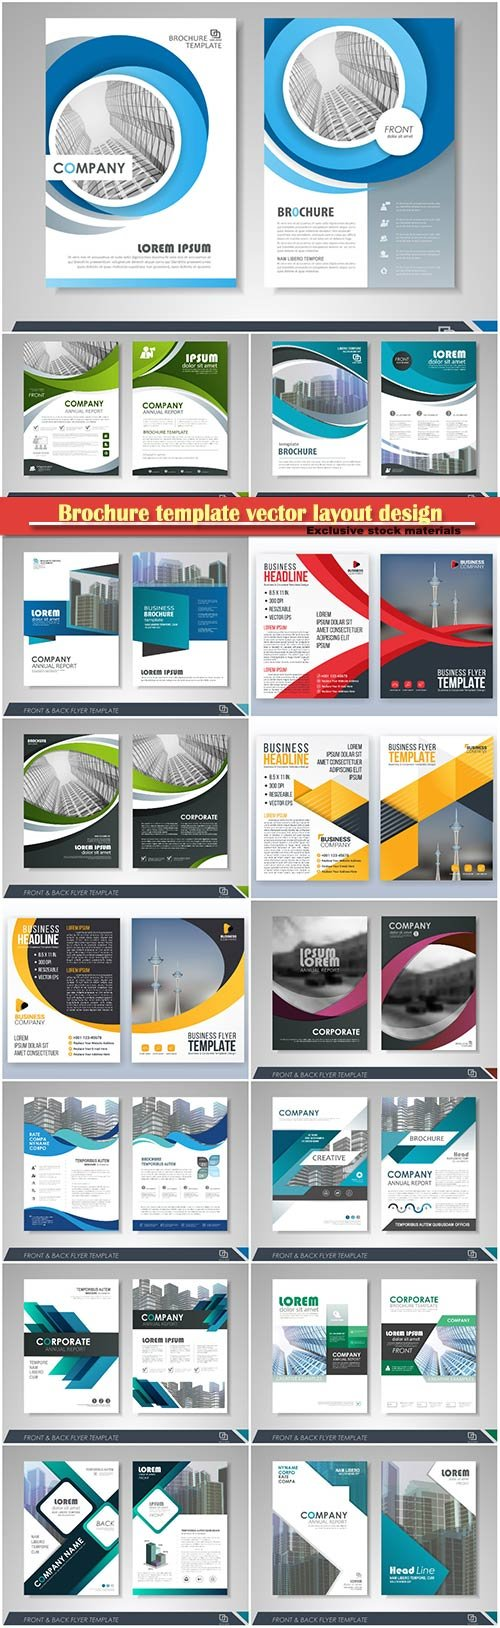 Brochure template vector layout design, corporate business annual report, magazine, flyer mockup # 210